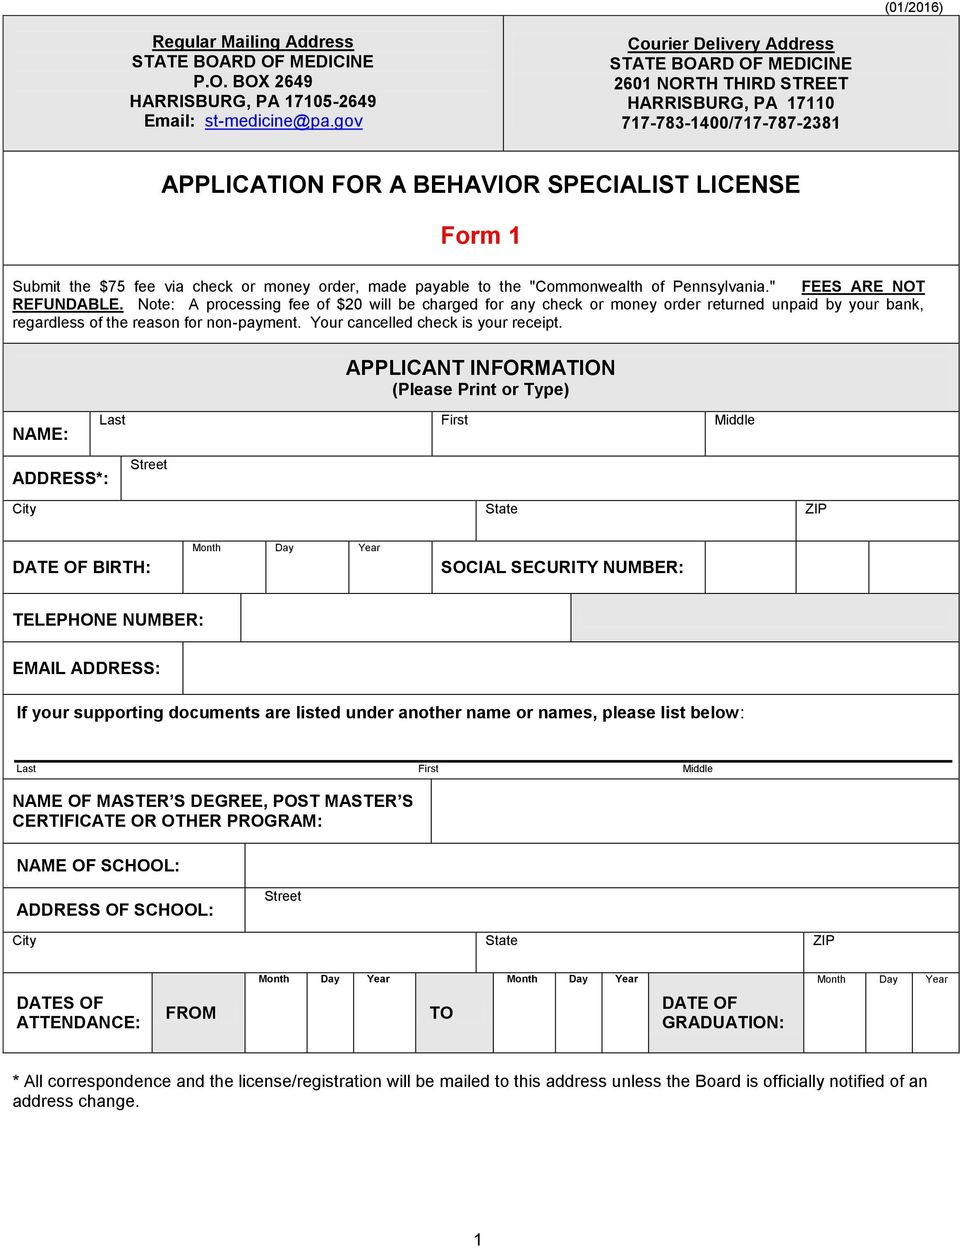 APPLICANT INFORMATION (Please Print or Type) NAME: ADDRESS*: Street DATE OF BIRTH: SOCIAL SECURITY NUMBER: TELEPHONE NUMBER: EMAIL ADDRESS: If your supporting documents are listed under another name